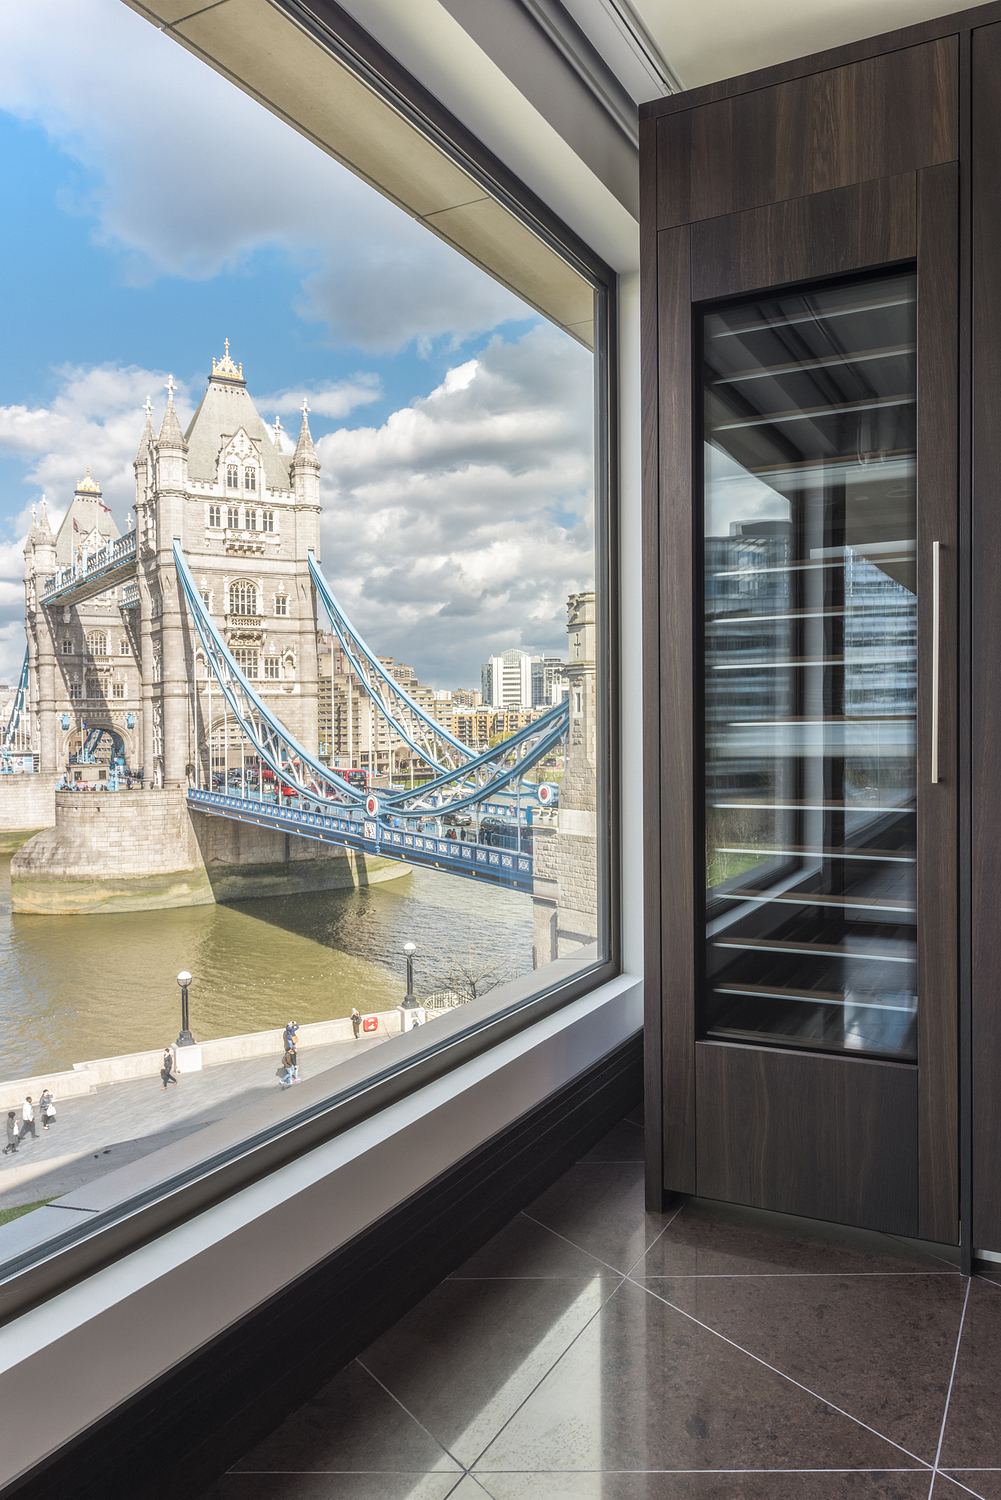 Kitchen detail with view of Tower Bridge, London